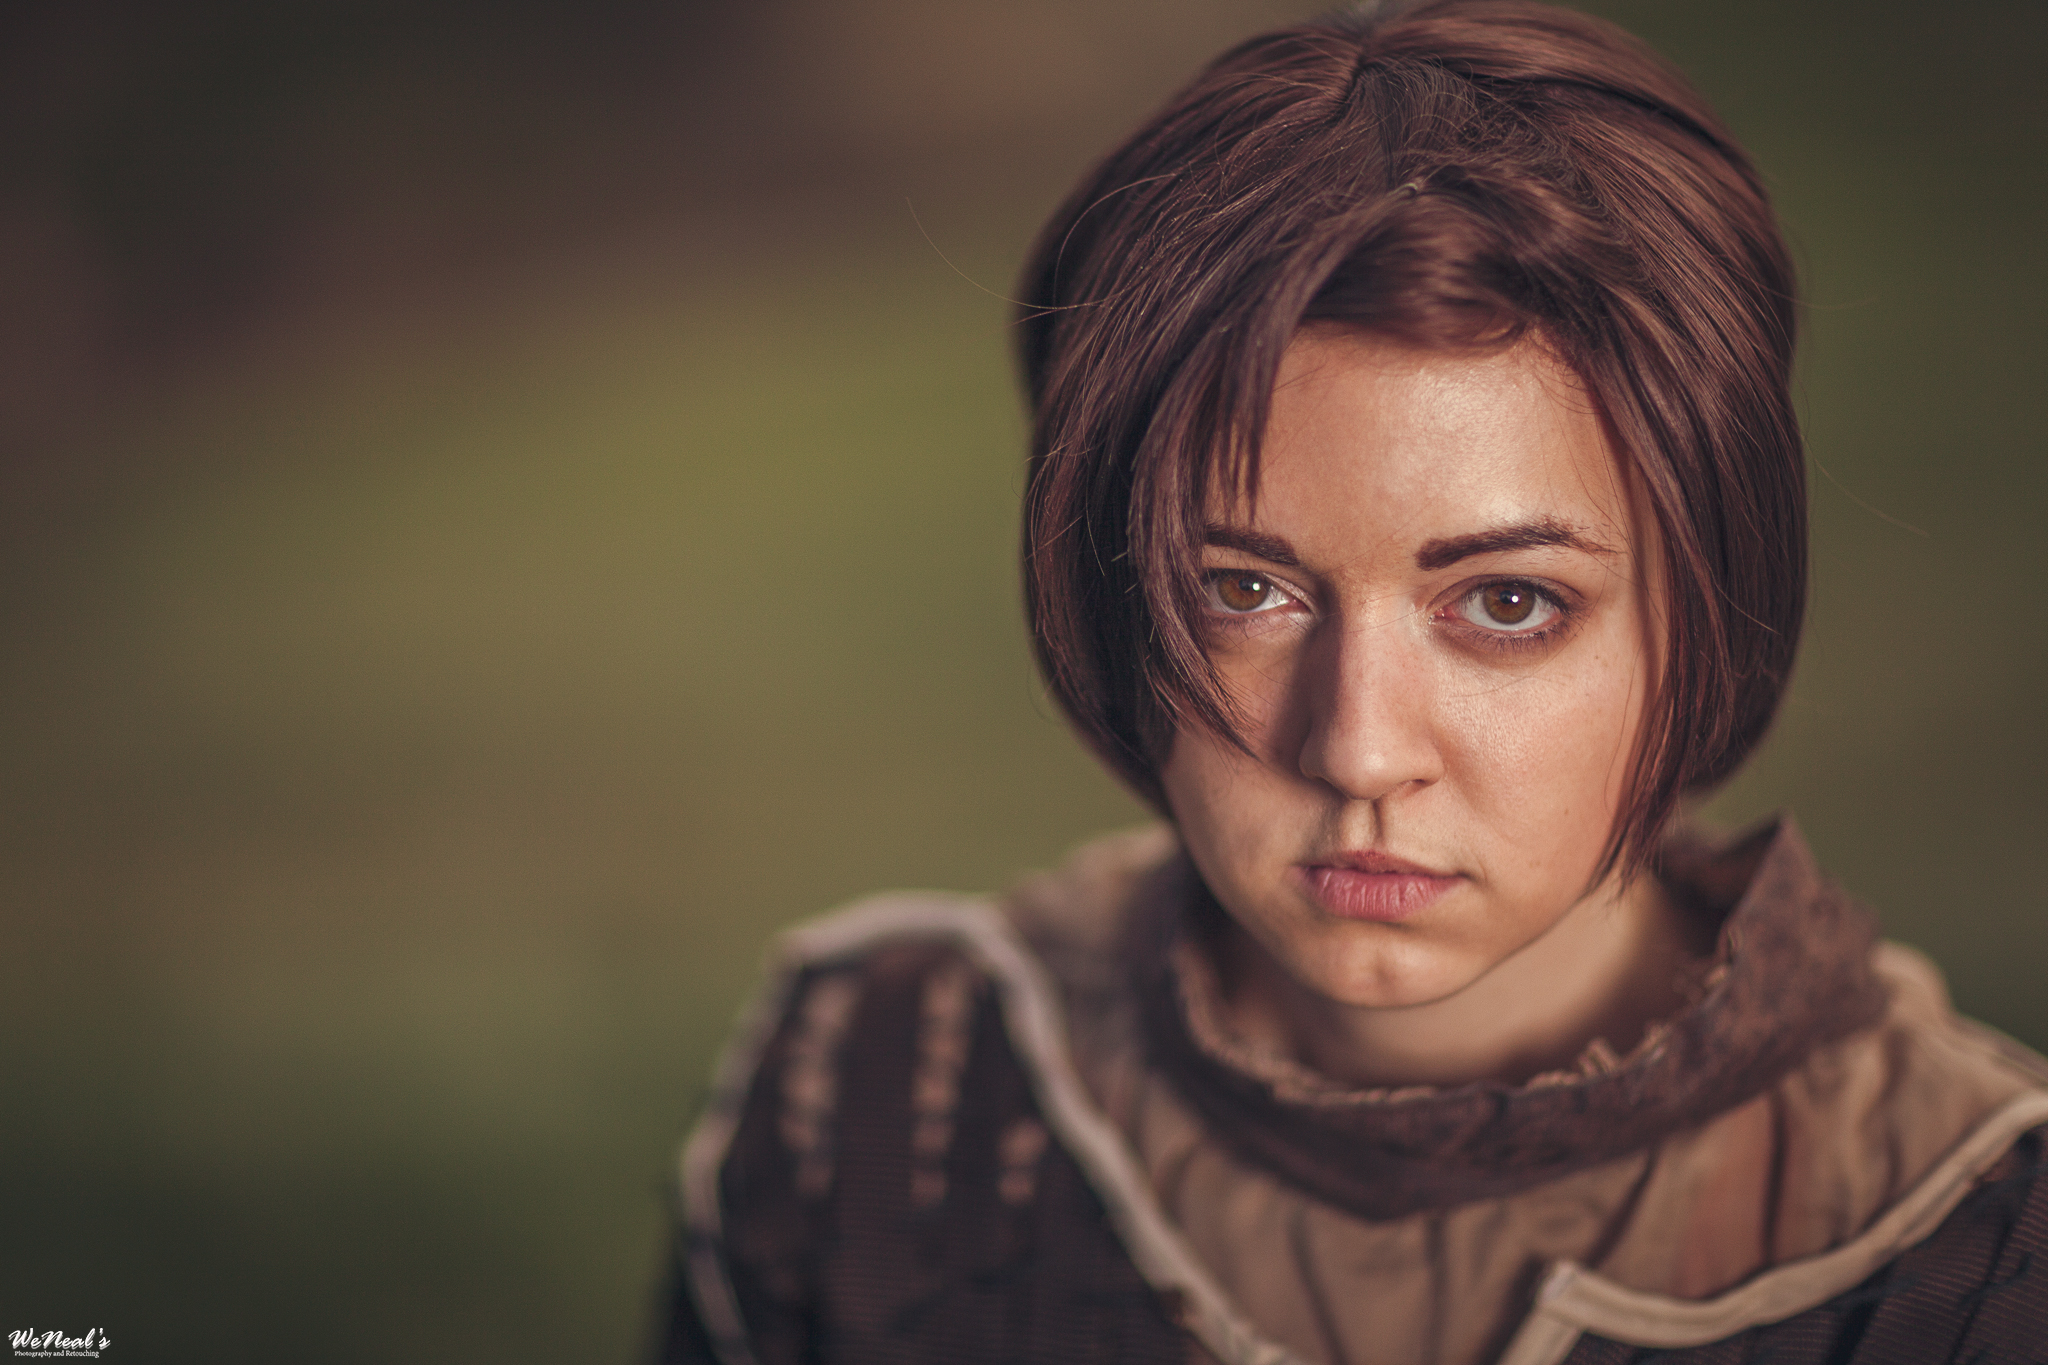 A photo of my  Arya Stark  taken by  WeNeals Photography and Retouching  at a fantasy themed group photoshoot.